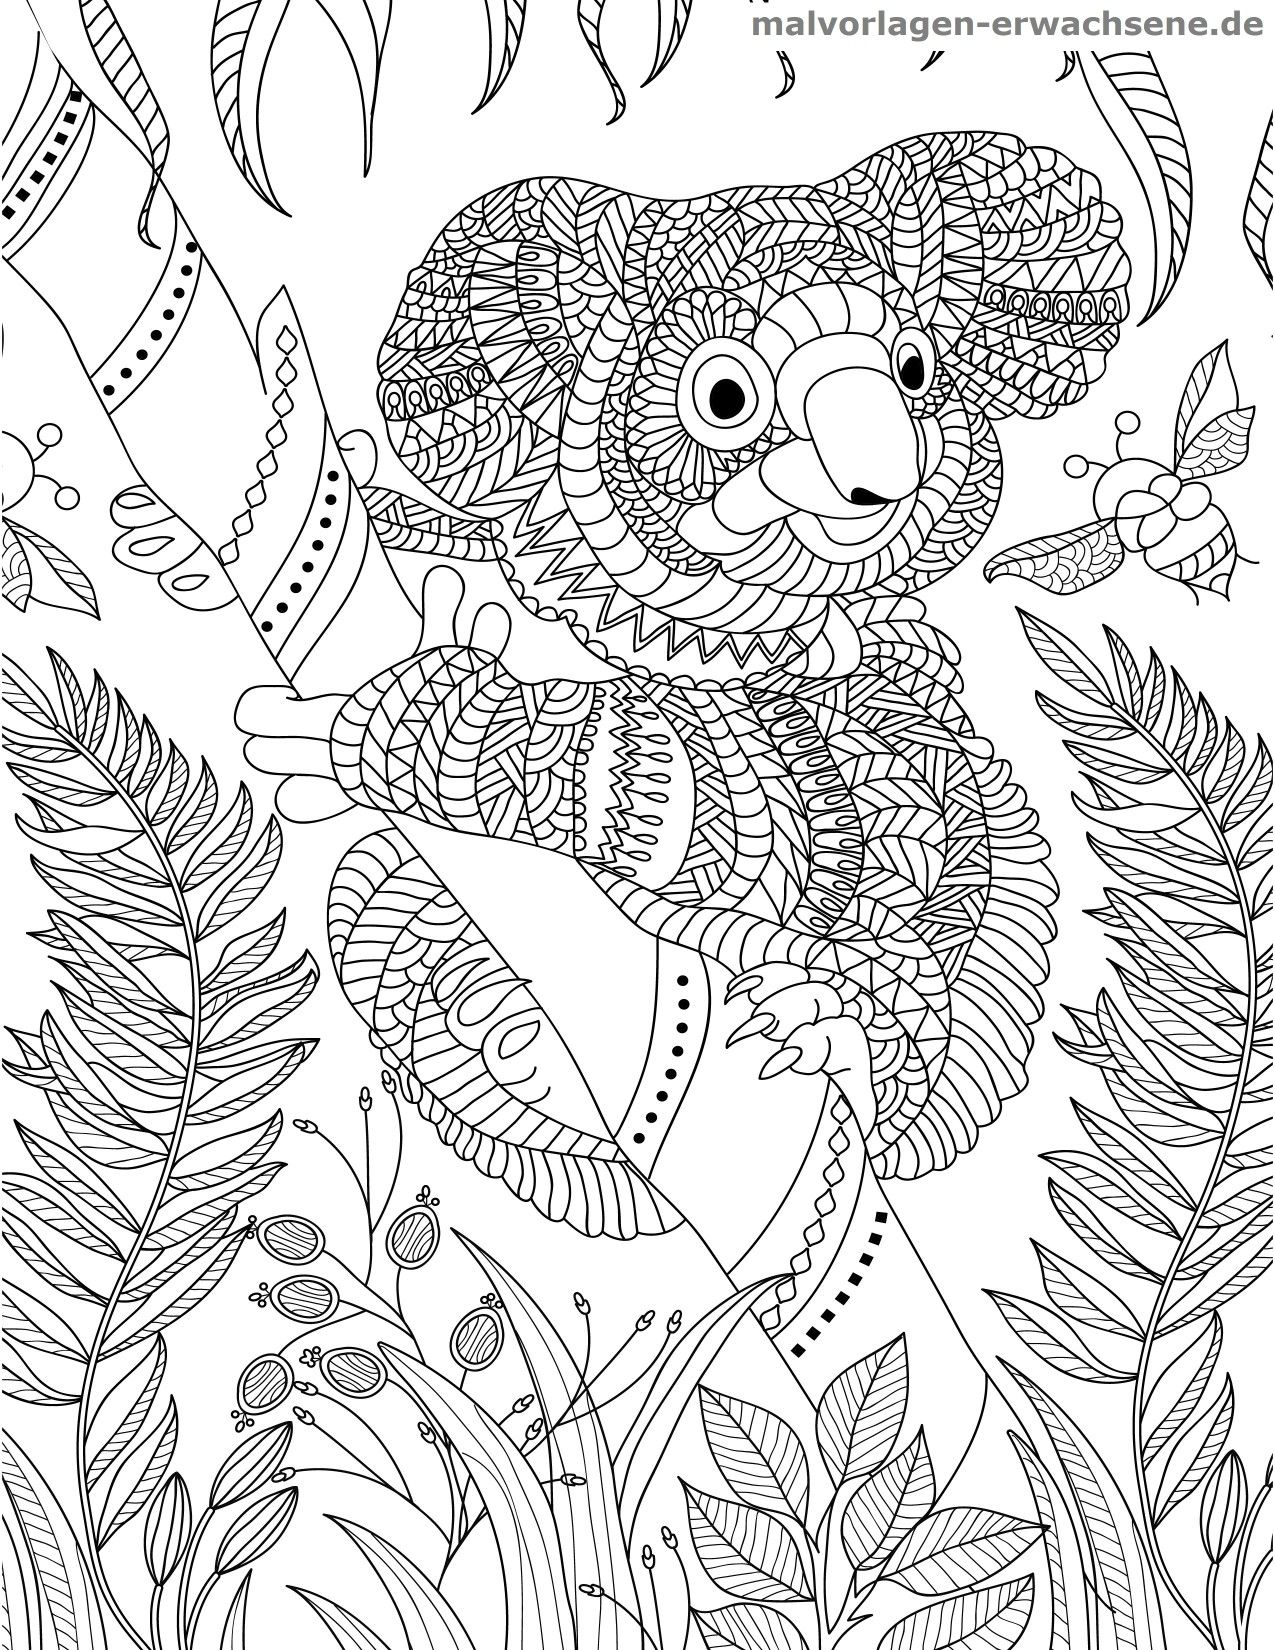 Pin By Ladulik On Coloring Bear Coloring Pages Animal Coloring Pages Coloring Posters